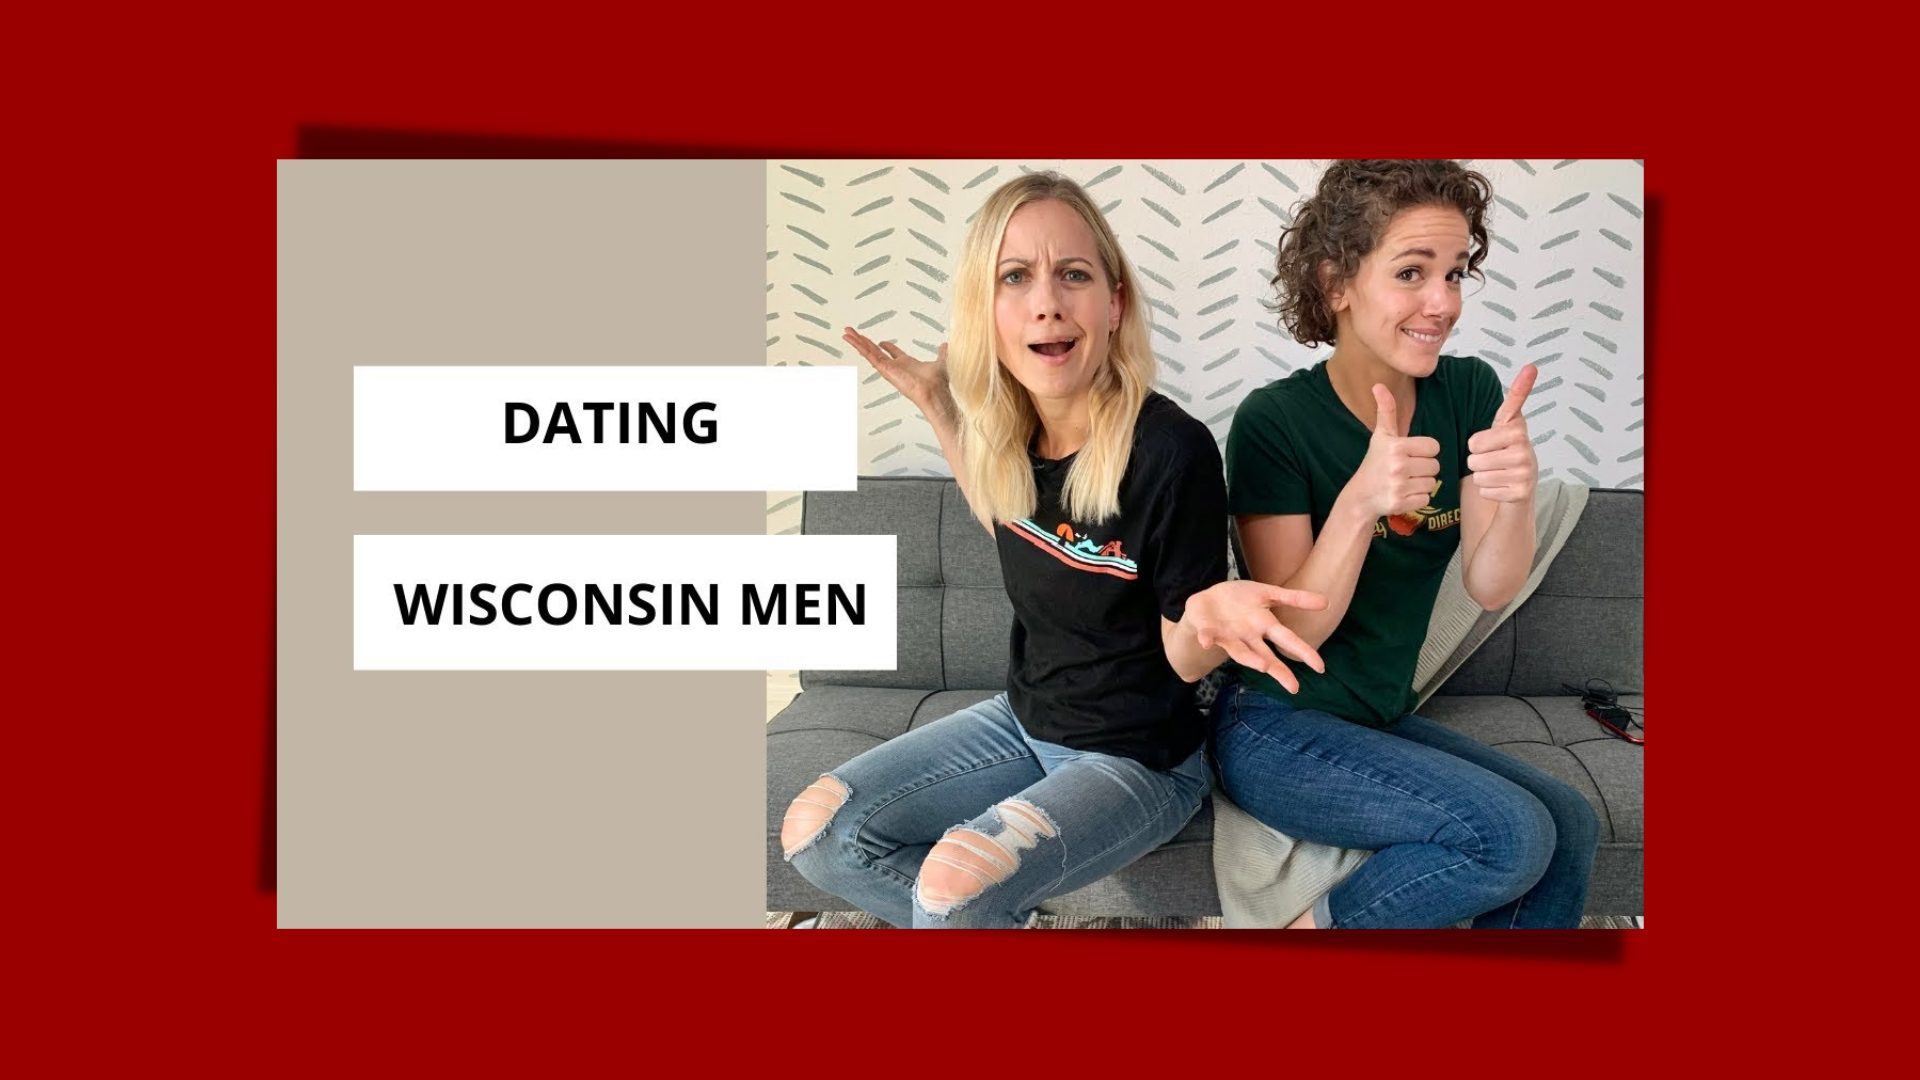 Red vs. Green Flags for Dating Wisconsin Men